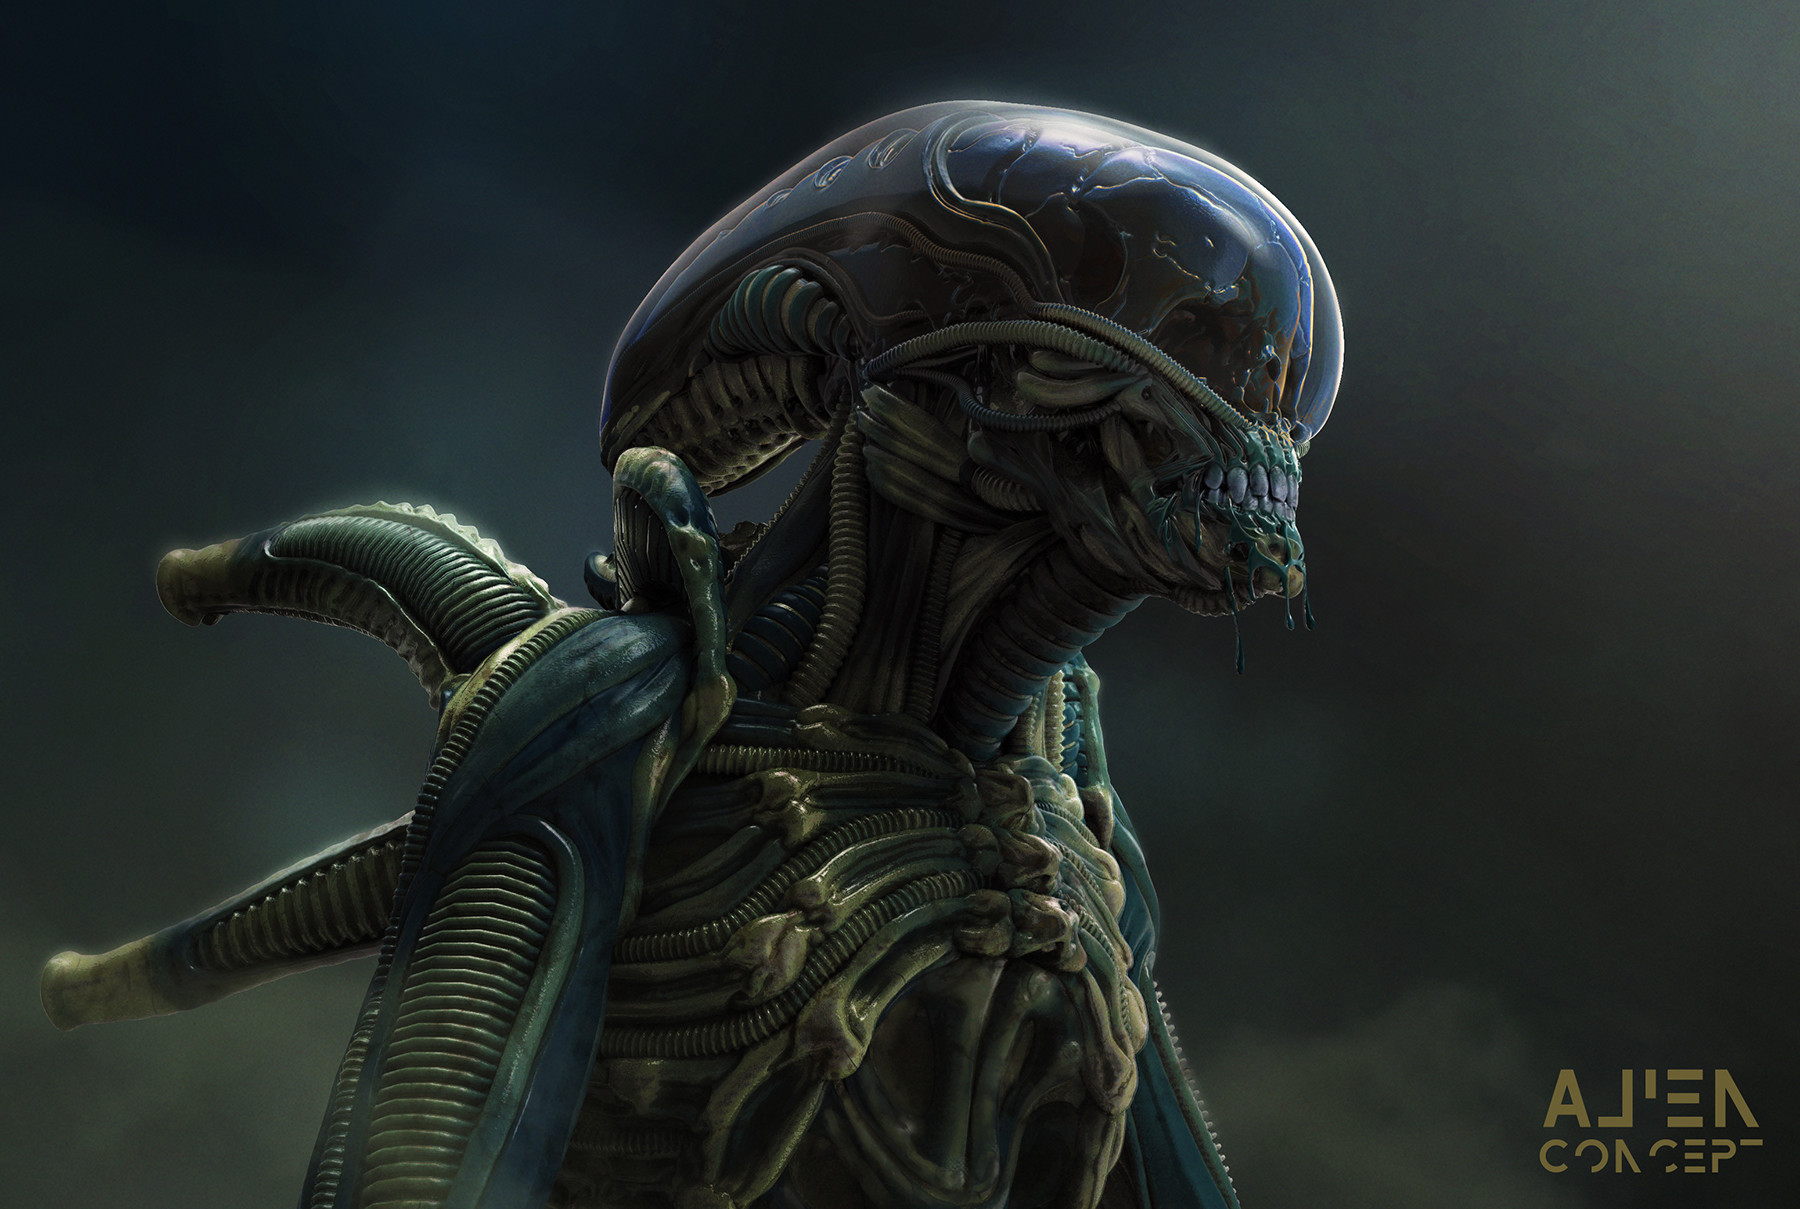 Cool Alien Themed Art by Maximus Jacobs